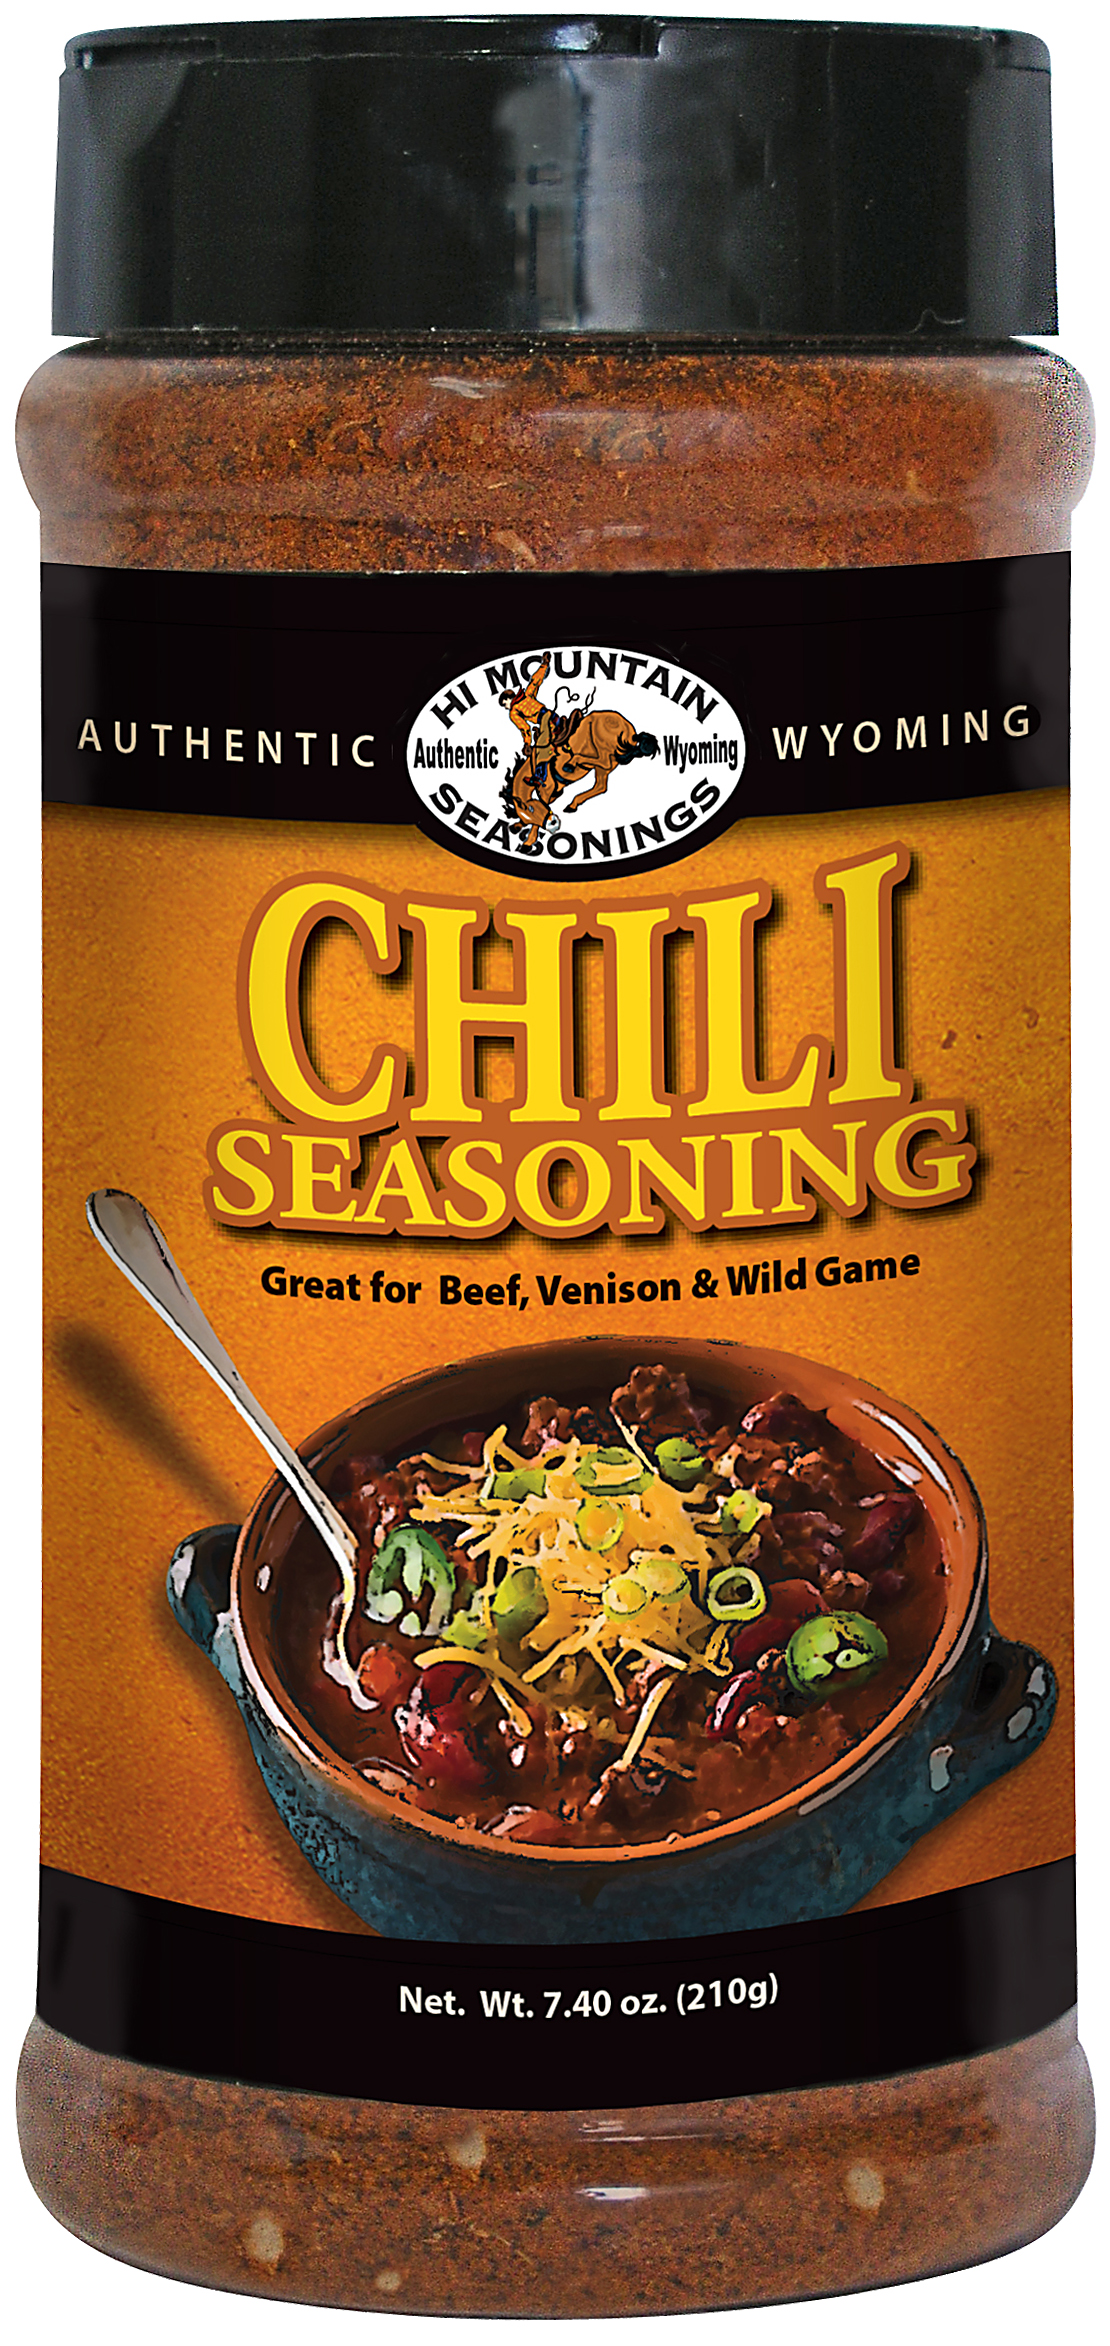 New Chili Seasoning May be the Best Thing Ever for Venison